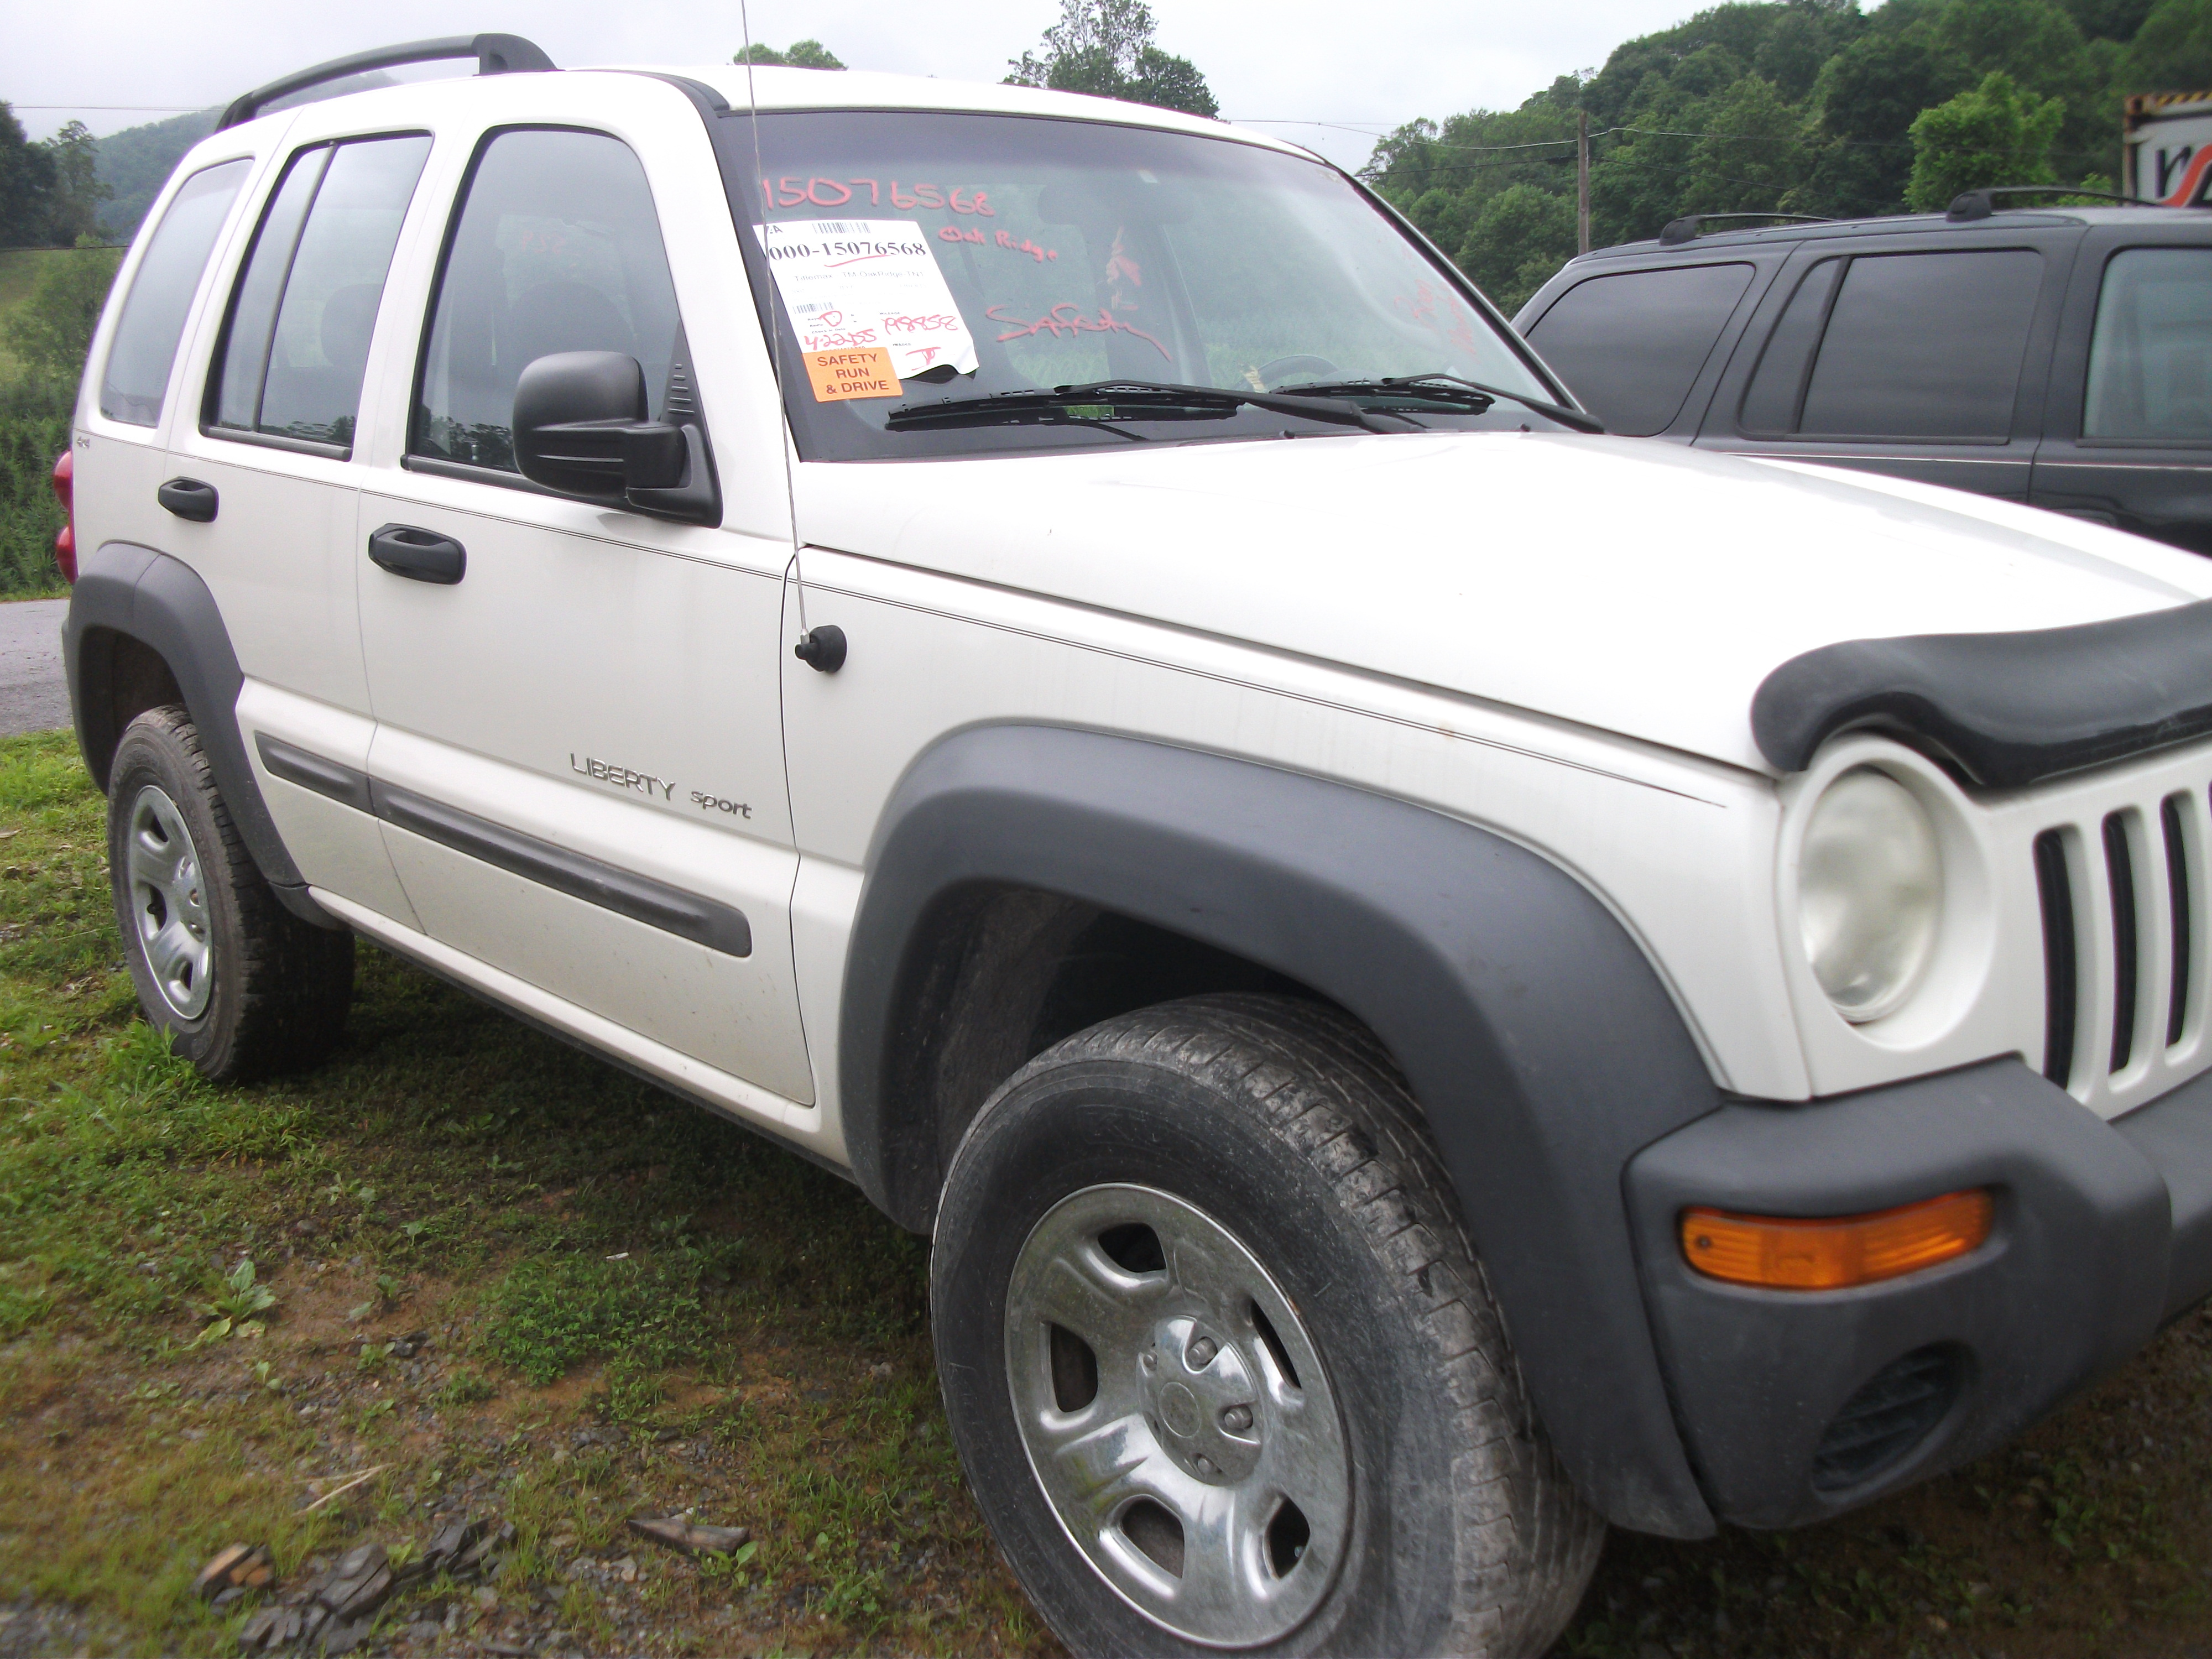 NEW ARRIVAL Jeep 2002 Liberty Sport 4Dr 4WD Wagon 6CYL 3 7L 4SPD